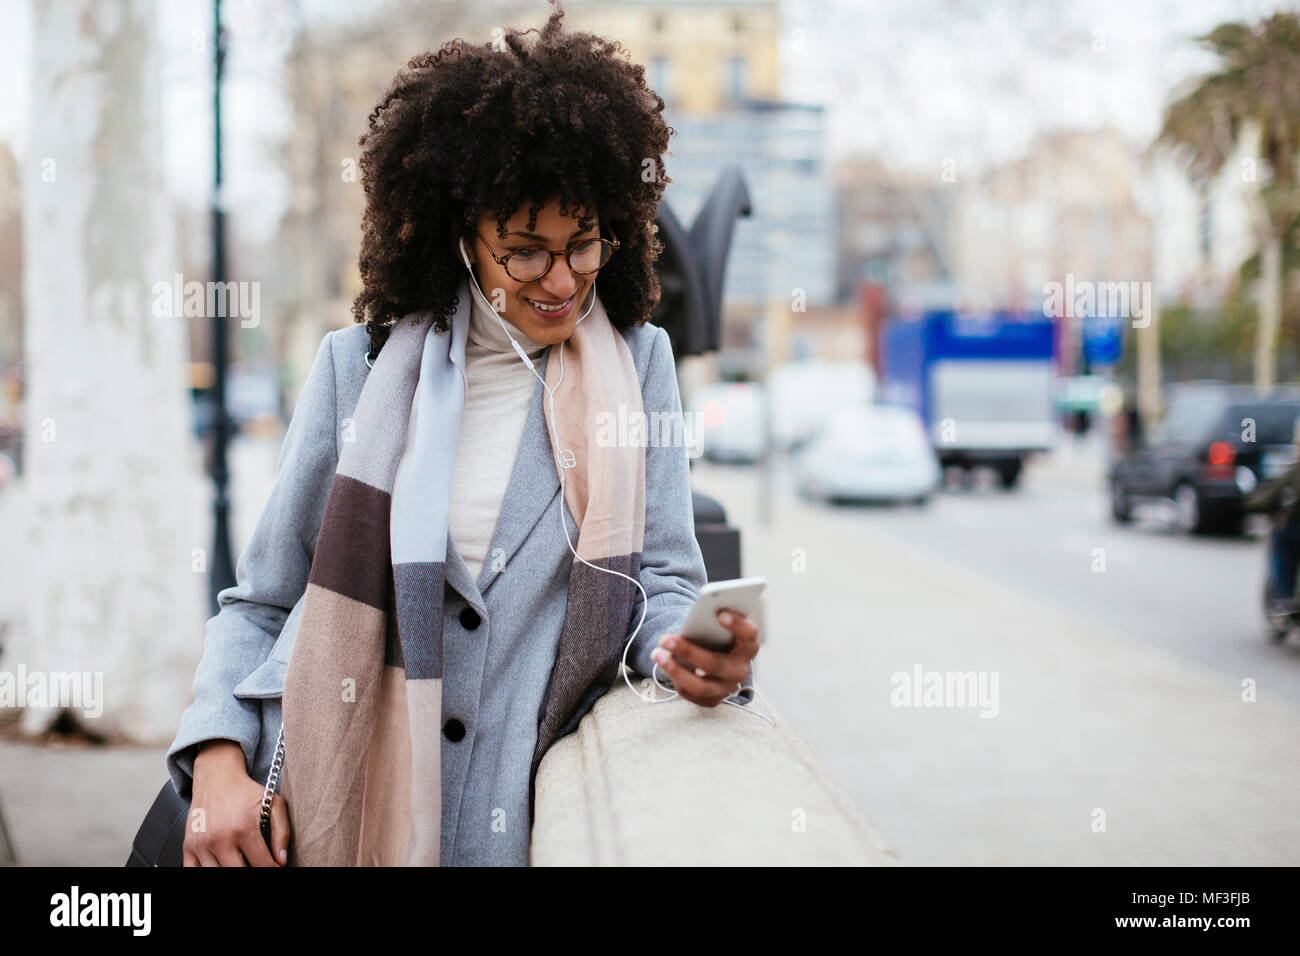 Spain, Barcelona, smiling woman with cell phone and earphones in the city - Stock Image